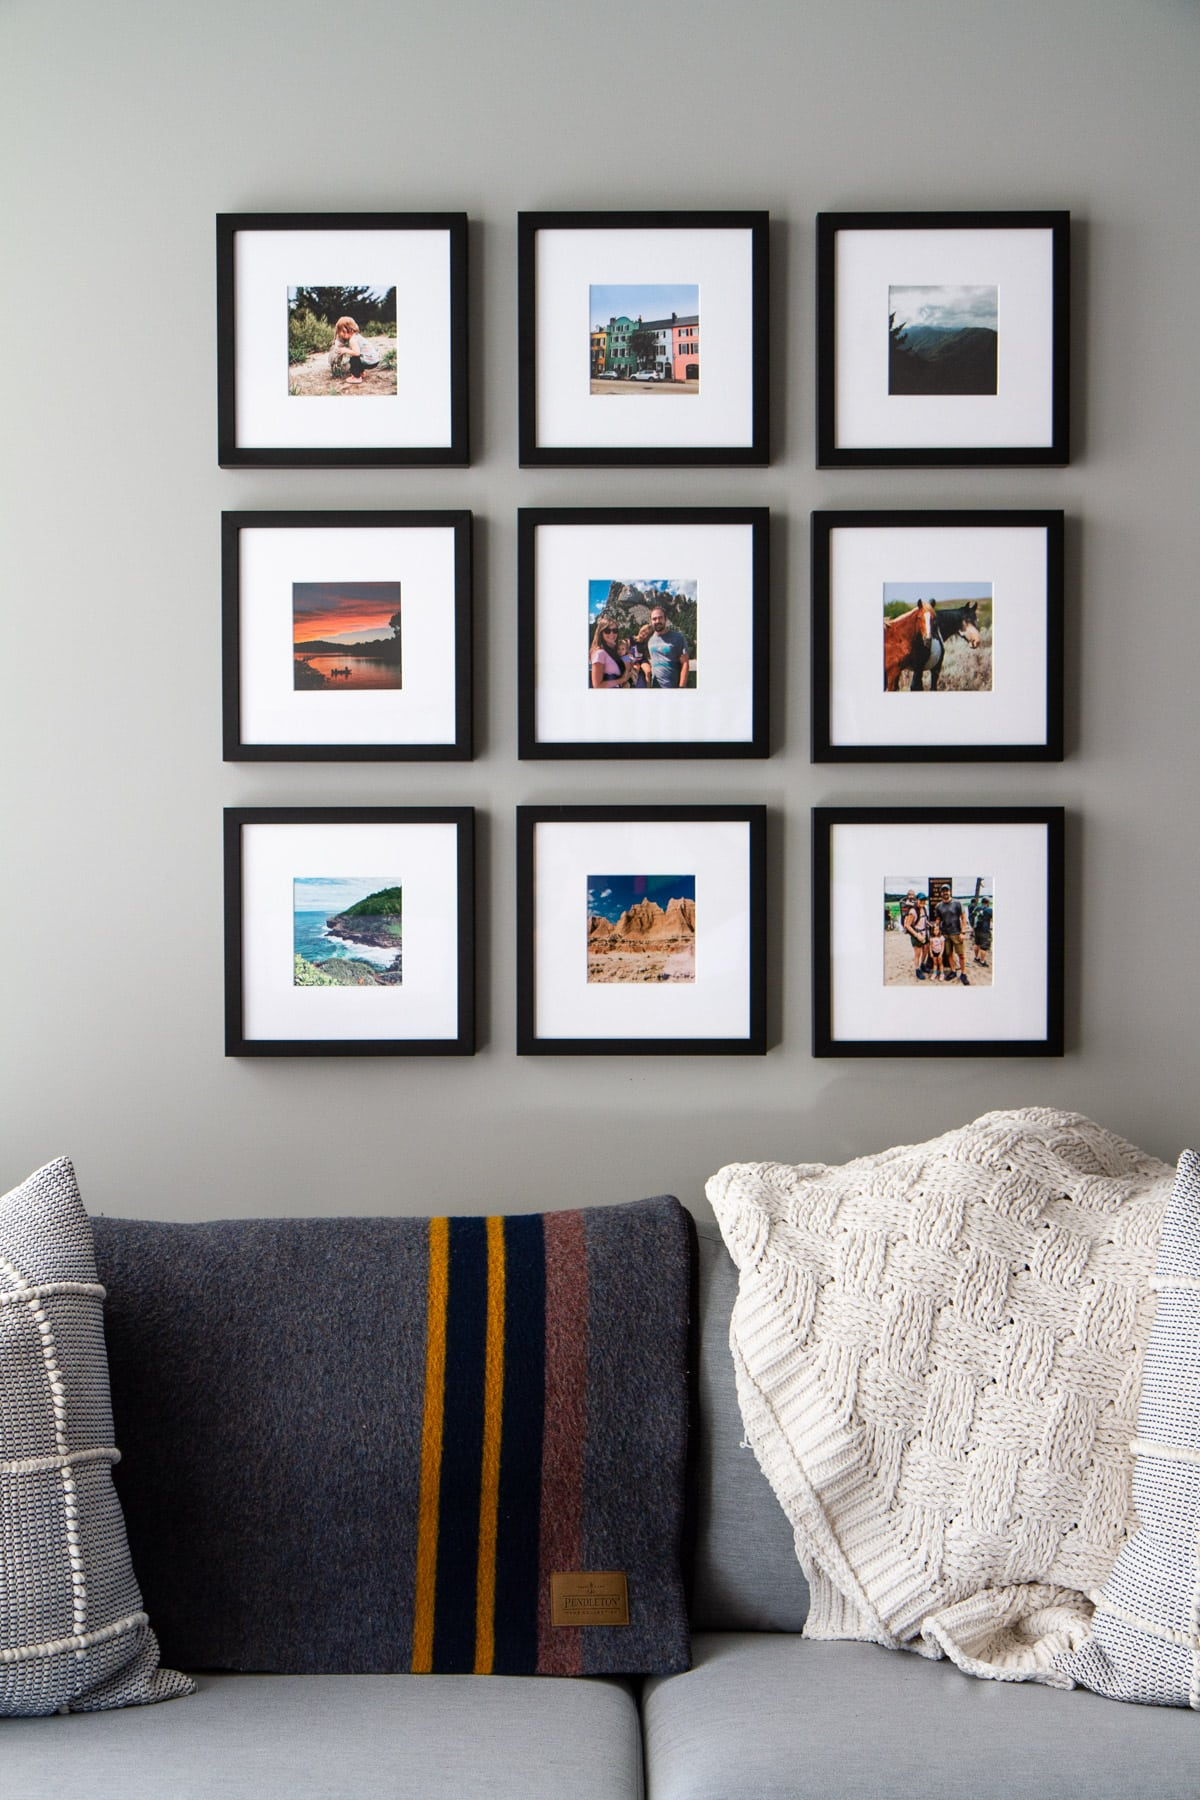 Framing Our Travels with Framebridge -- Framebridge makes it simple and effortless to frame your memories to treasure for years to come. @girlversusdough #girlversusdough #Framebridge #gallerywall #homedesign